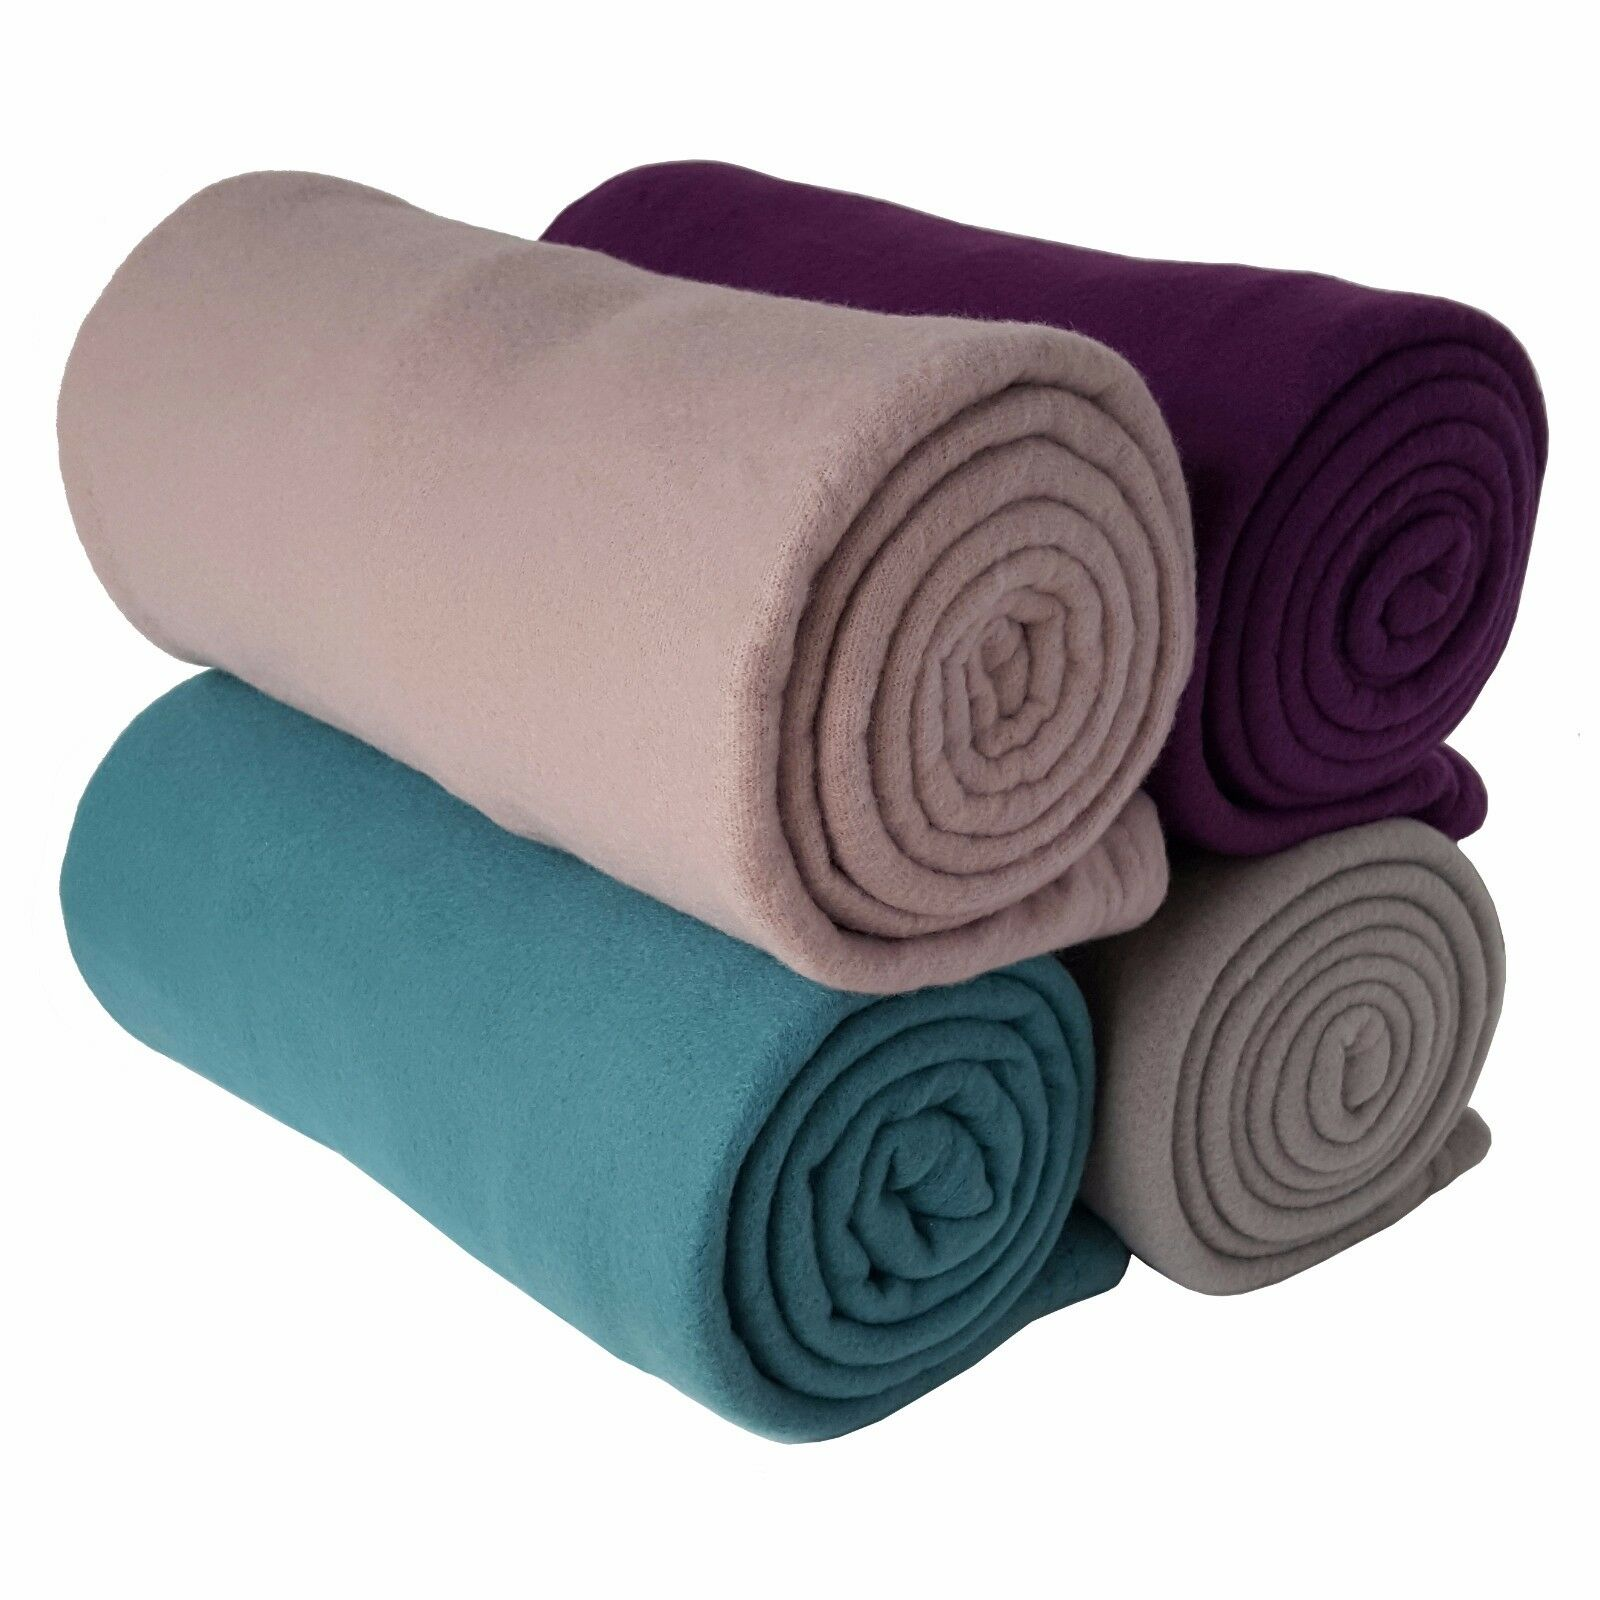 4 x 150cm Fleece Lightweight Yoga   Sport Blanket  - 4 Colours